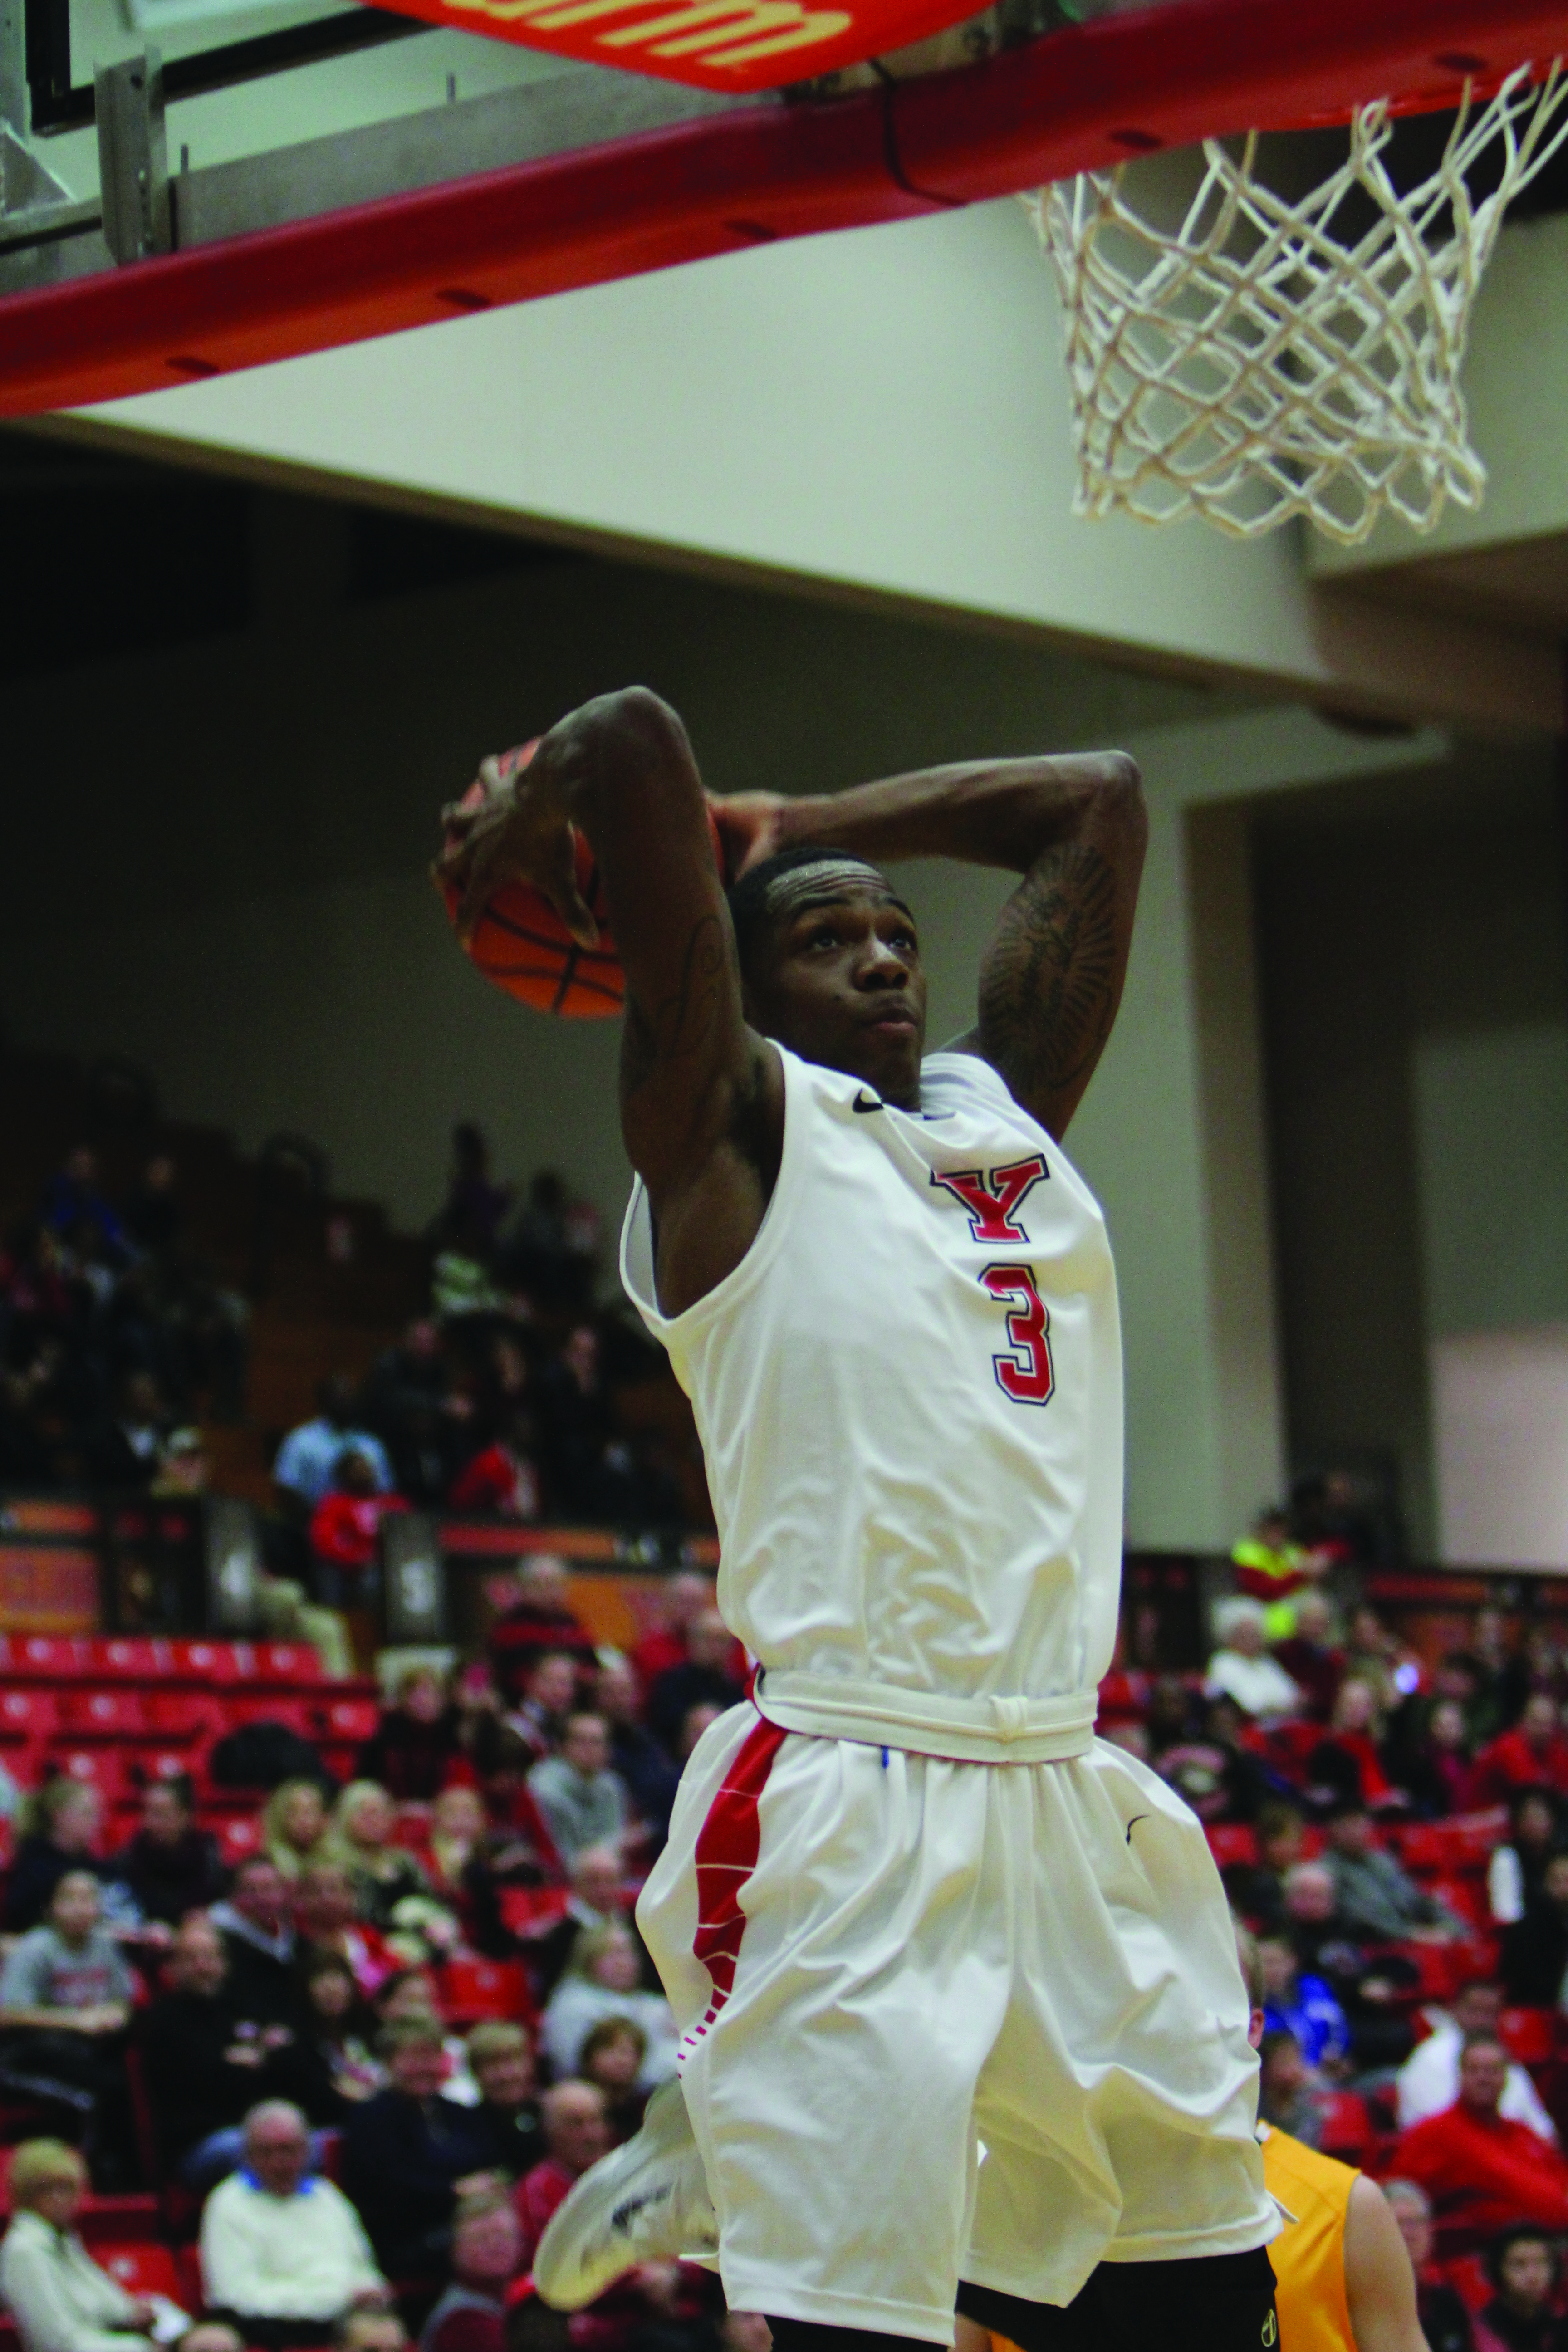 Senior guard Kendrick Perry finishes fast break with a ferocious dunk. Perry scored a game-high 31 points in YSU's victory over UIC on Saturday. Photo by Dustin Livesay/The Jambar.